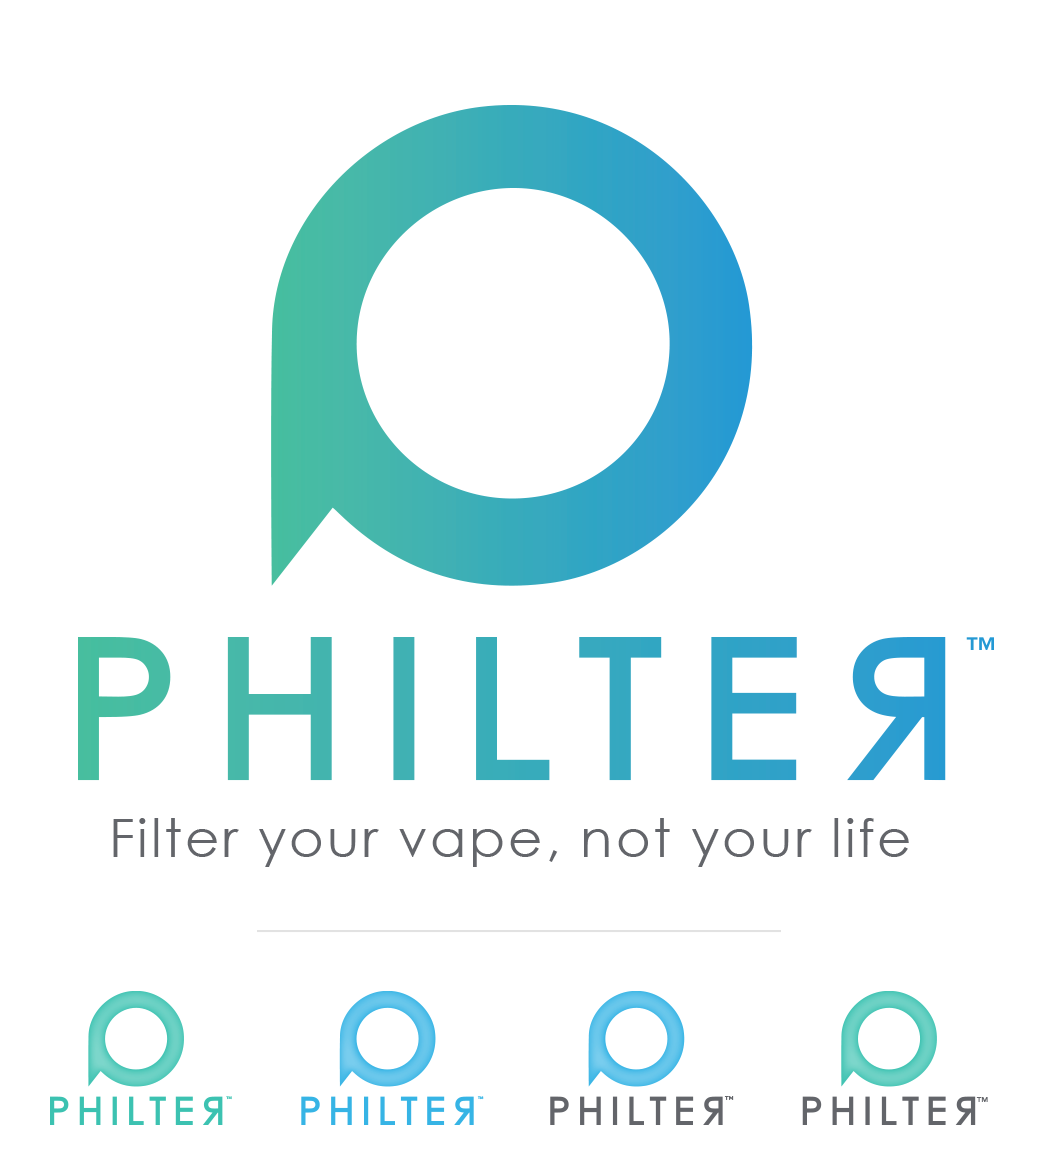 philter-logo.png